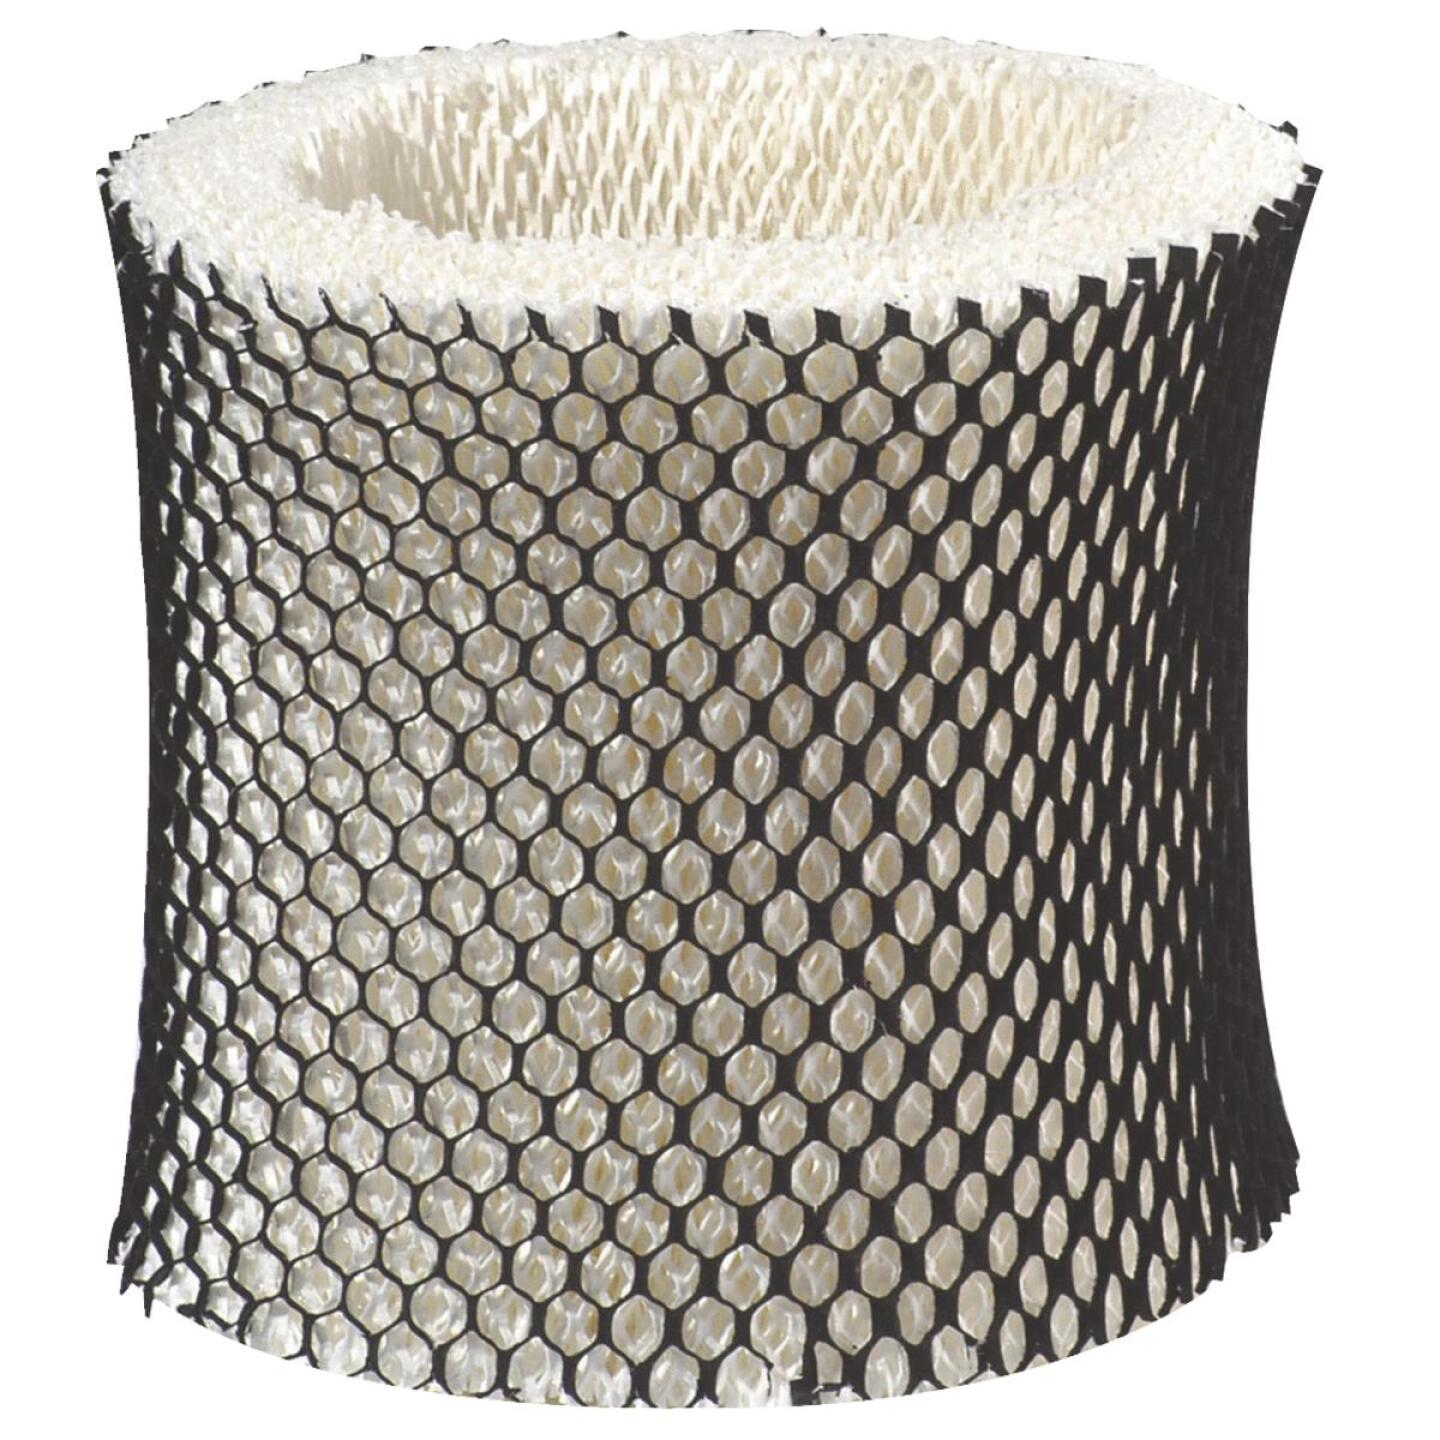 Holmes HWF64 Type B Humidifier Wick Filter Image 1